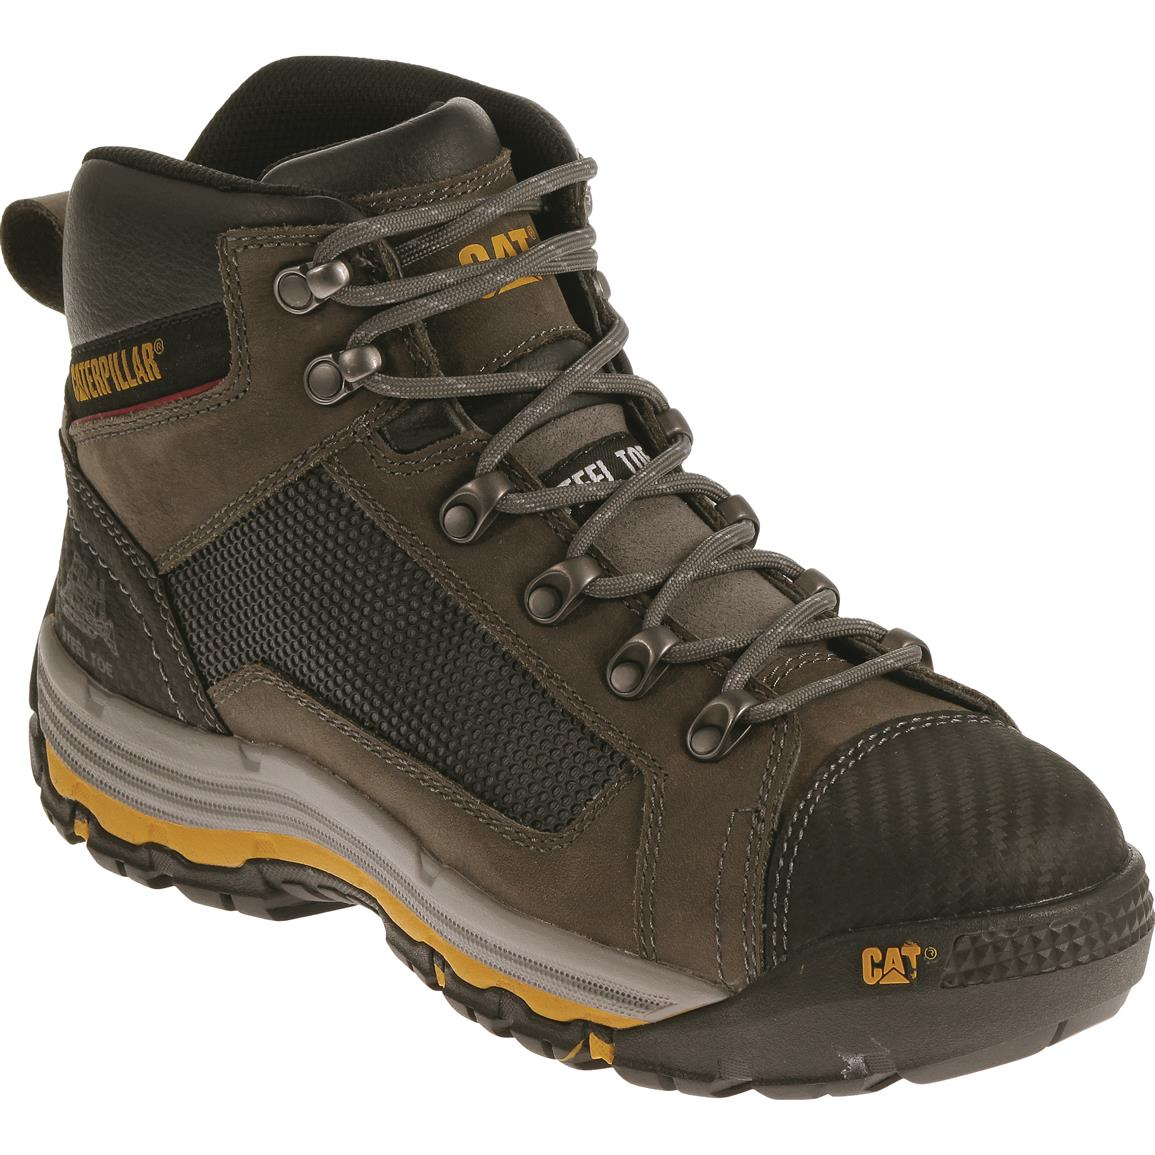 Cat Men's Convex Mid Steel Toe Work Boots, Dark Gull Gray